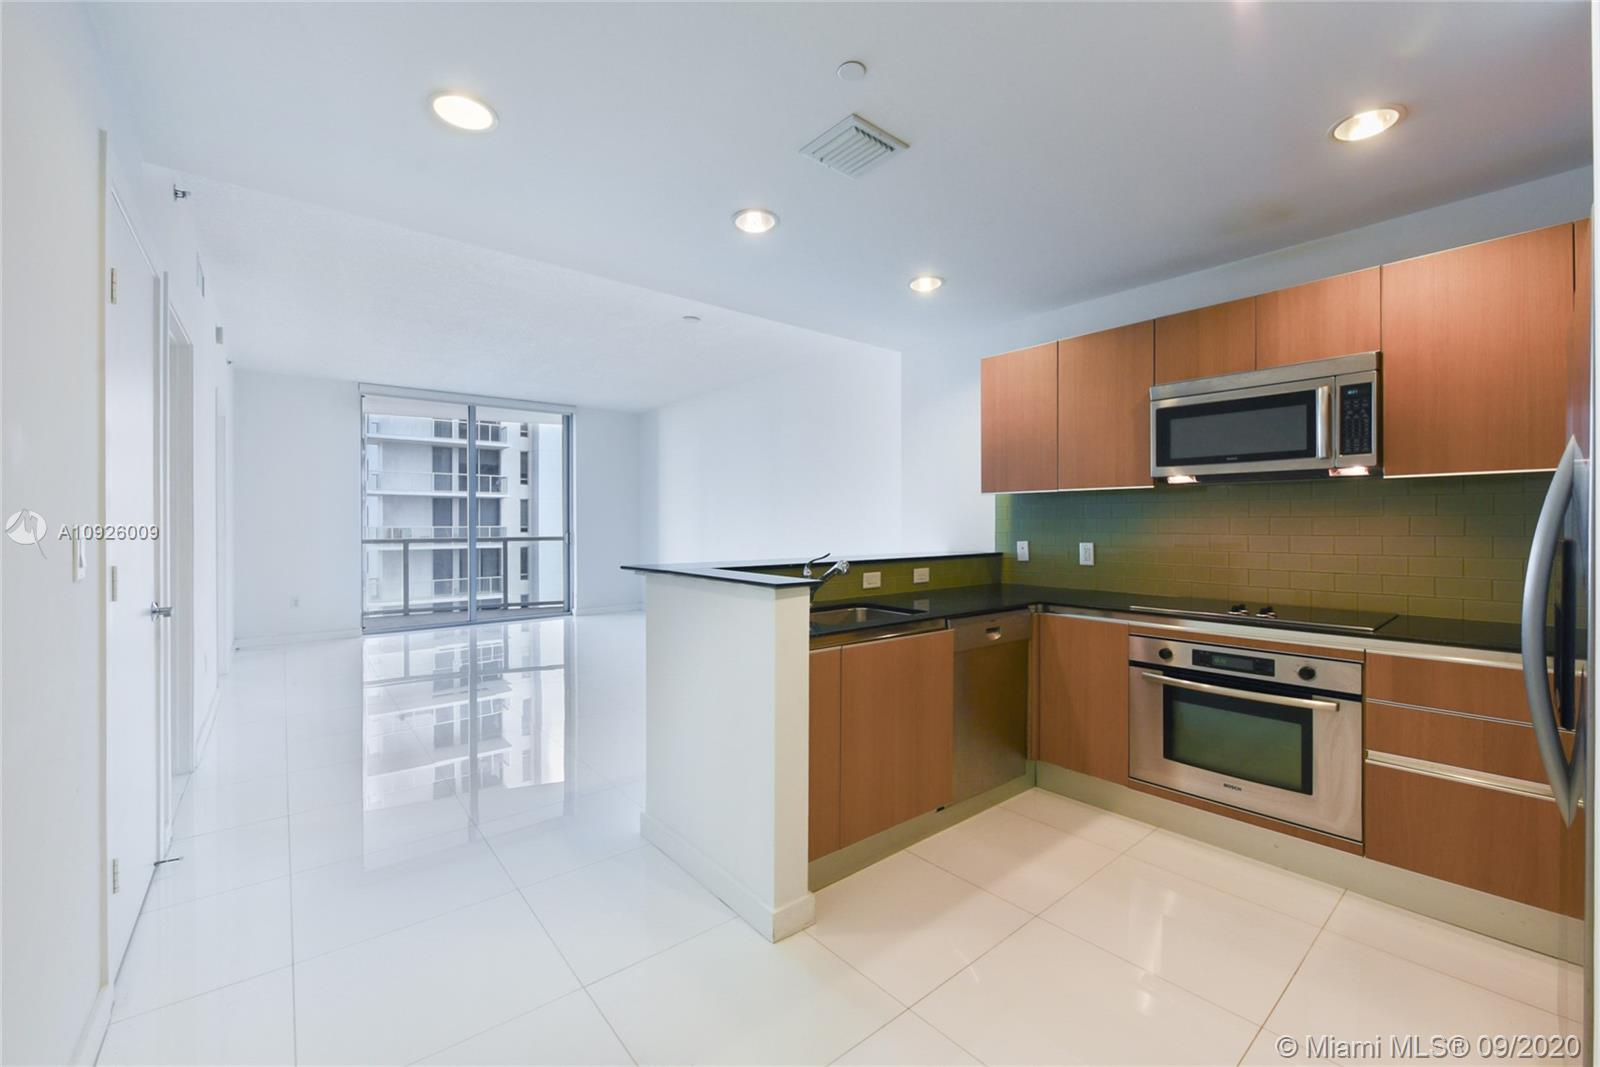 AVAILABLE OCTOBER 7TH! Spacious 945 sq. ft. unfurnished 1 bedroom/1 bath with a terrace and white tile